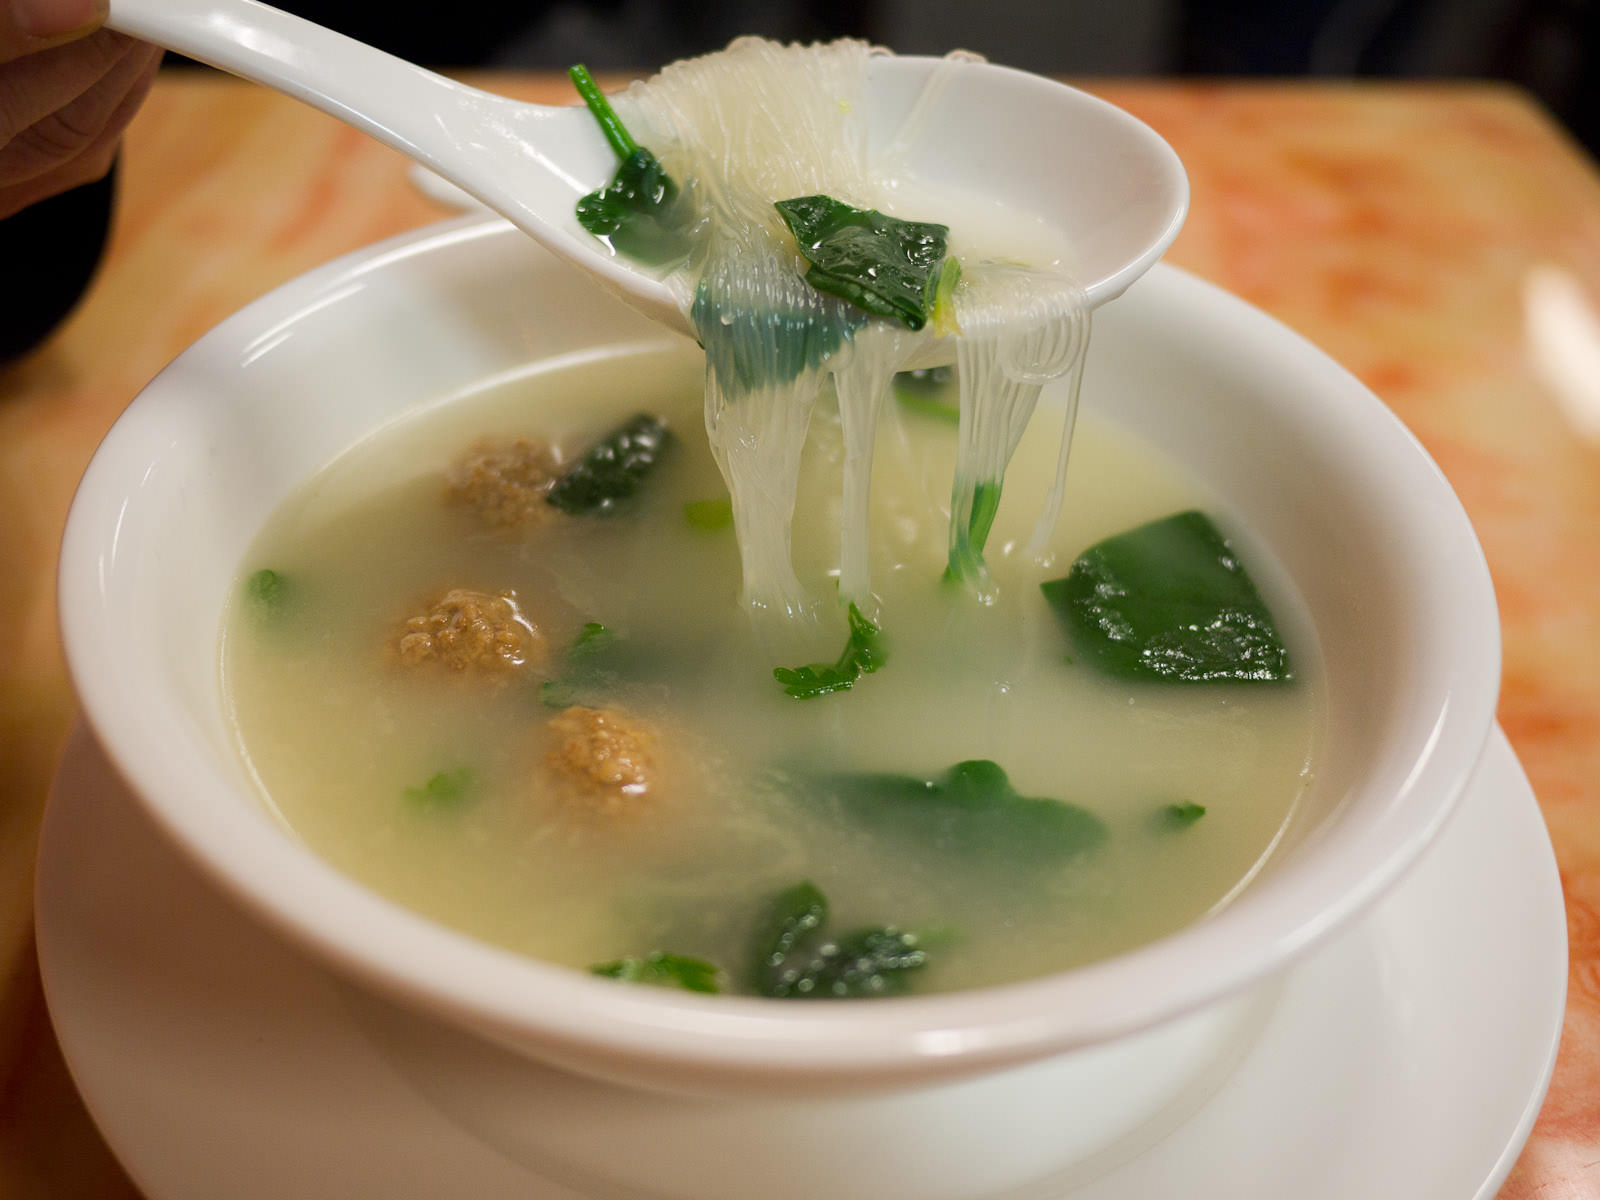 Meatballs and spinach soup - don't miss the vermicelli!